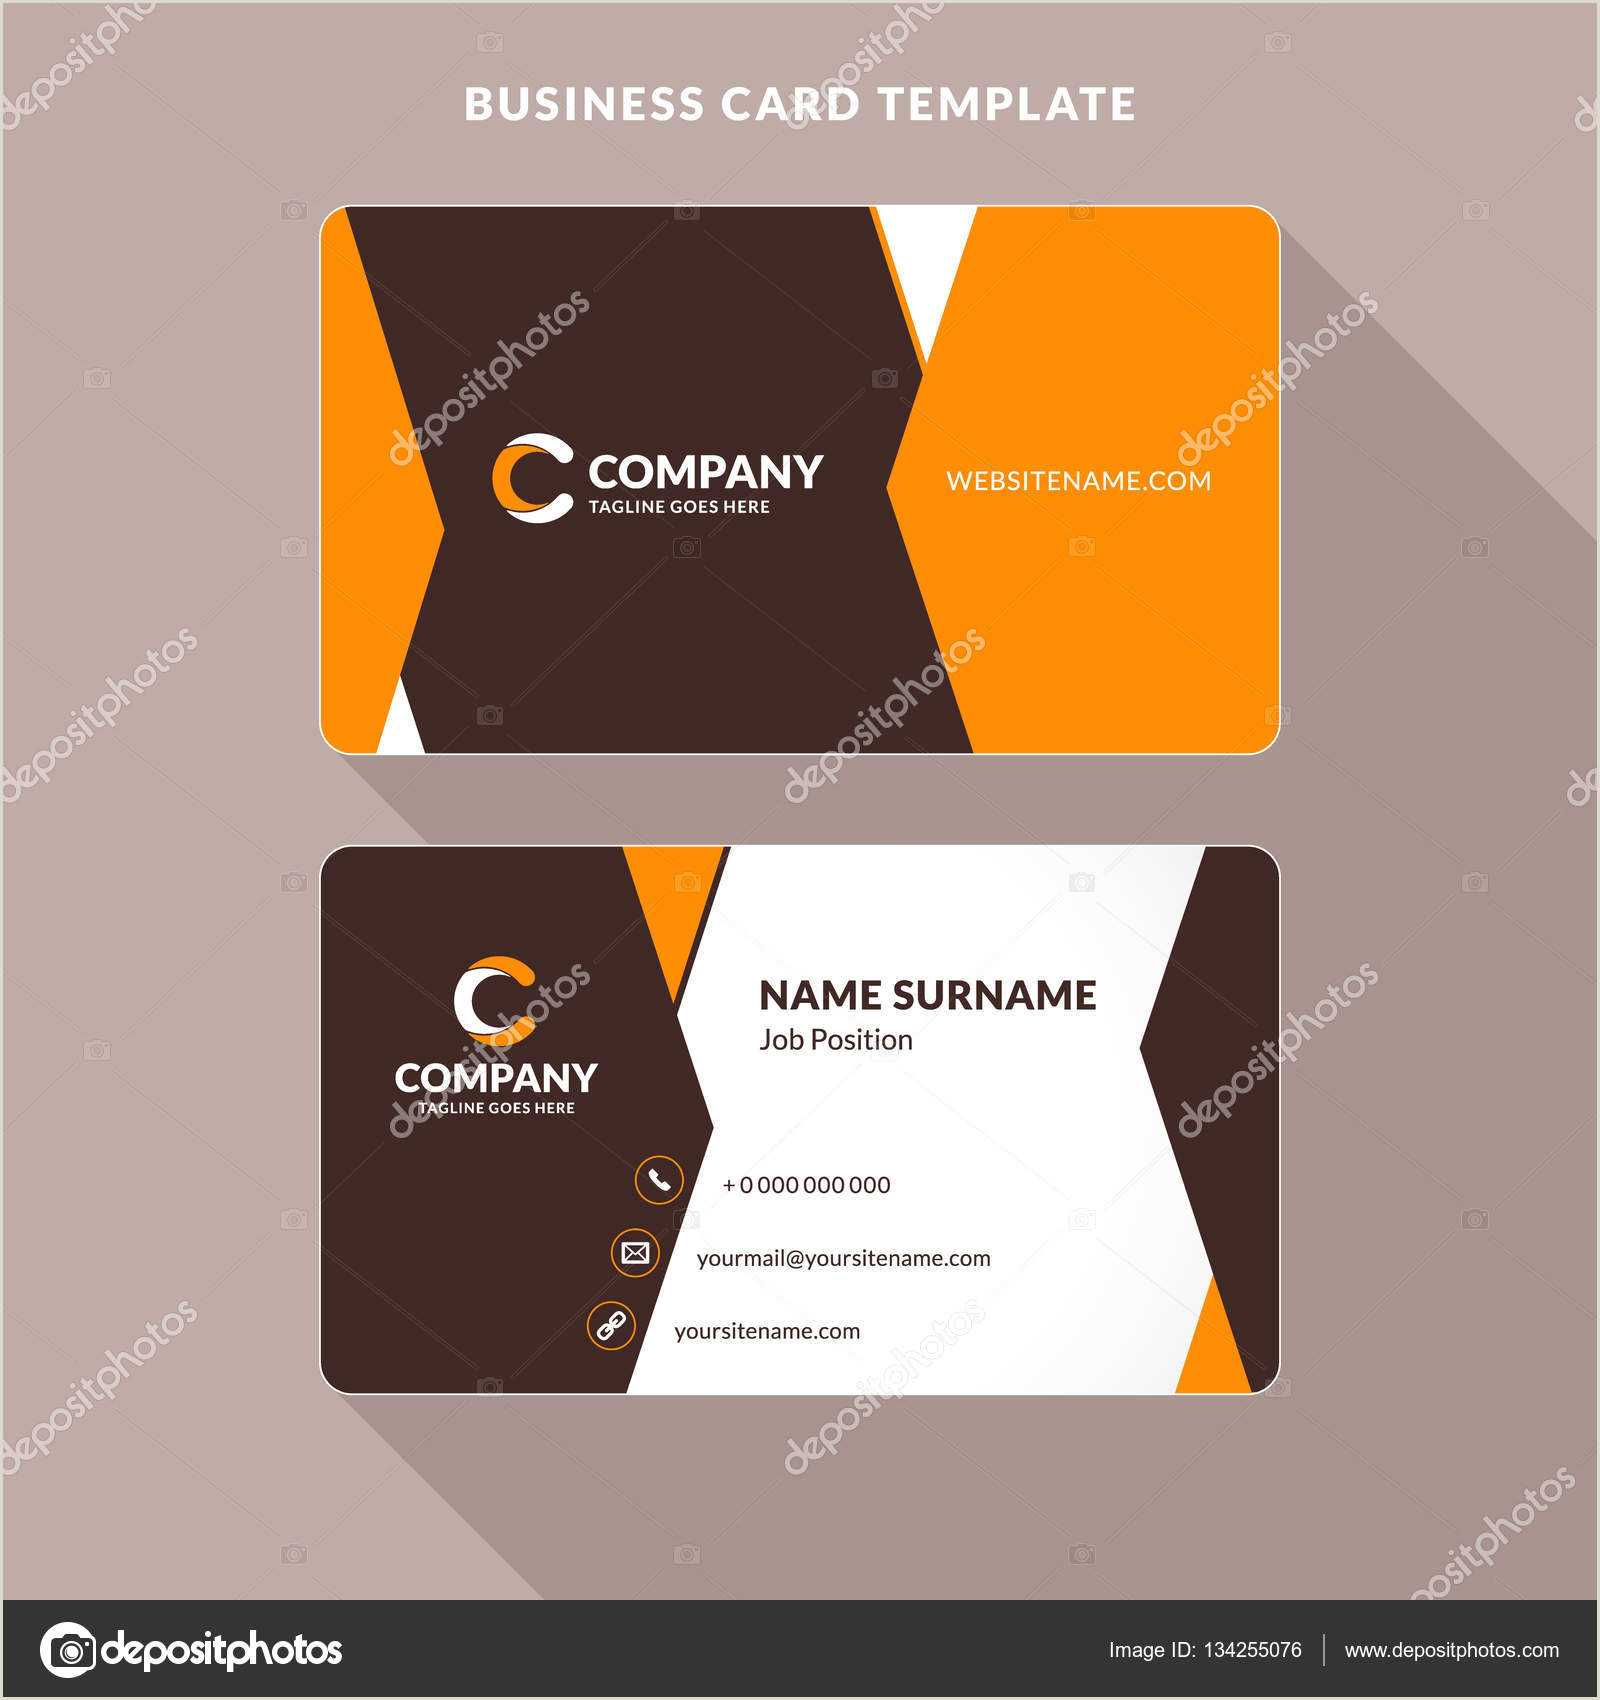 Unique Paper To Print Business Cards Creative And Clean Double Sided Business Card Template Orange And Brown Colors Flat Design Vector Illustration Stationery Design